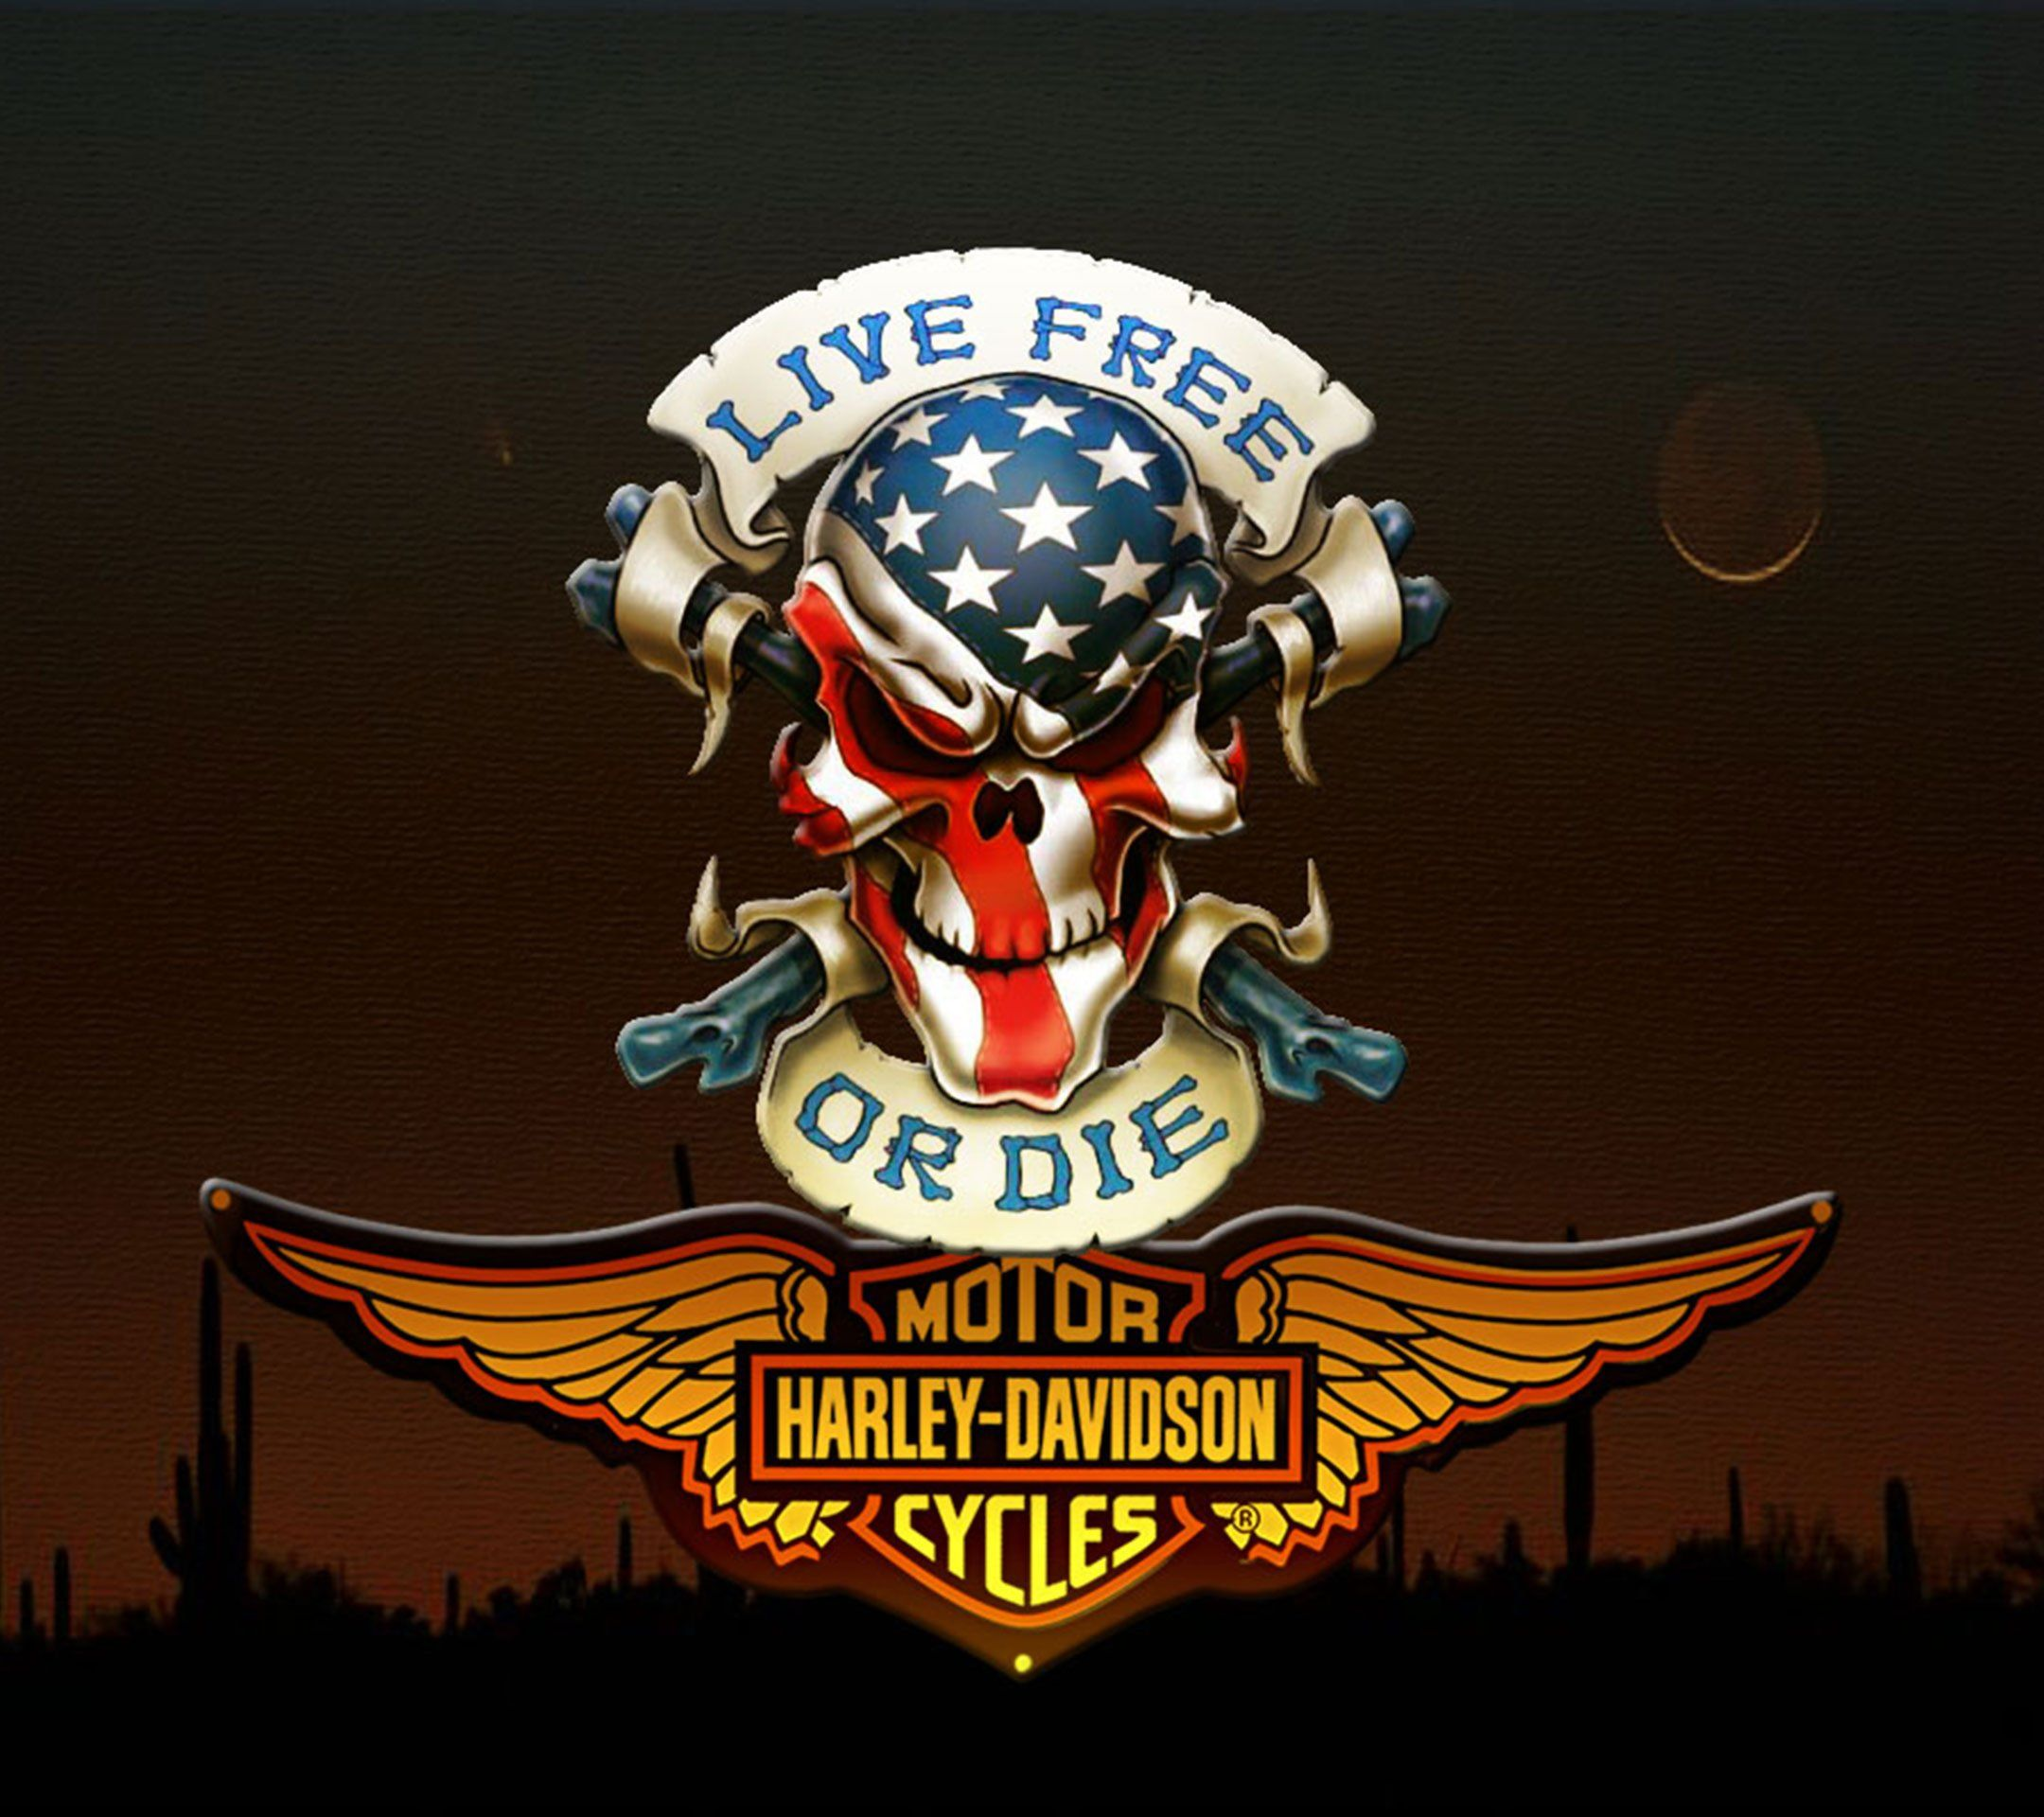 Harley Davidson Logo Wallpaper Hd Cool 7 HD Wallpapers isghd 2160x1920